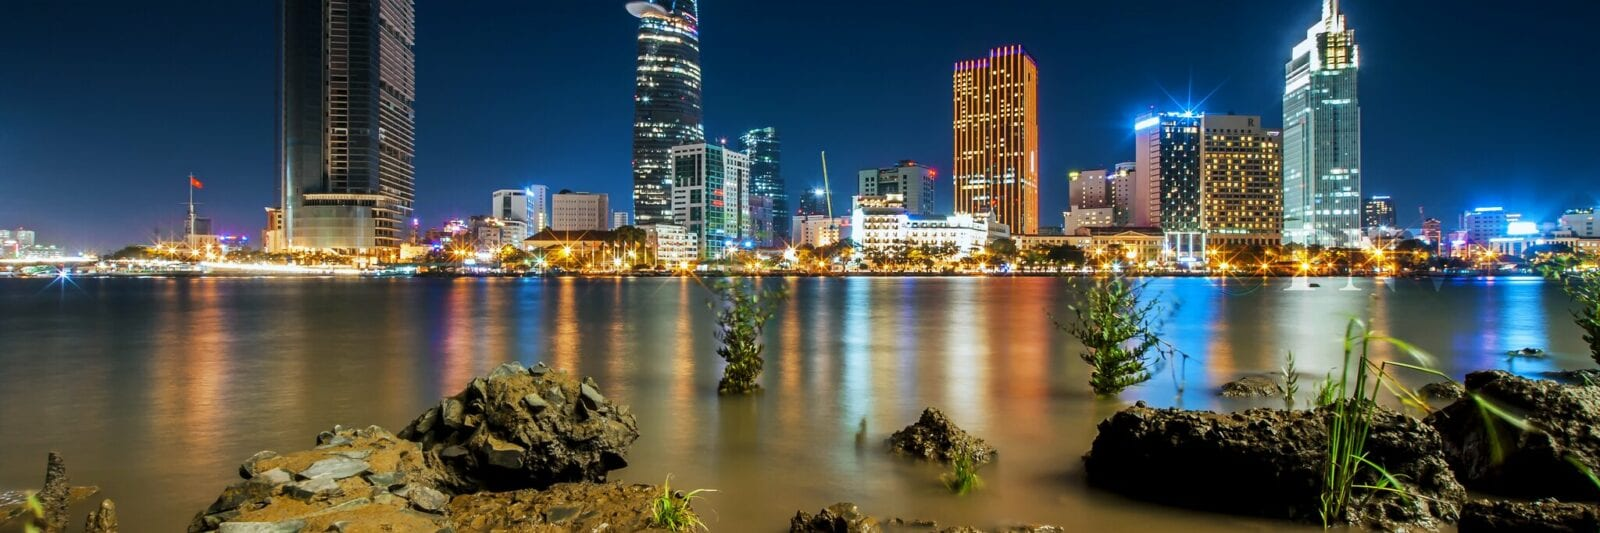 Image of the Saigon skyline in Vietnam